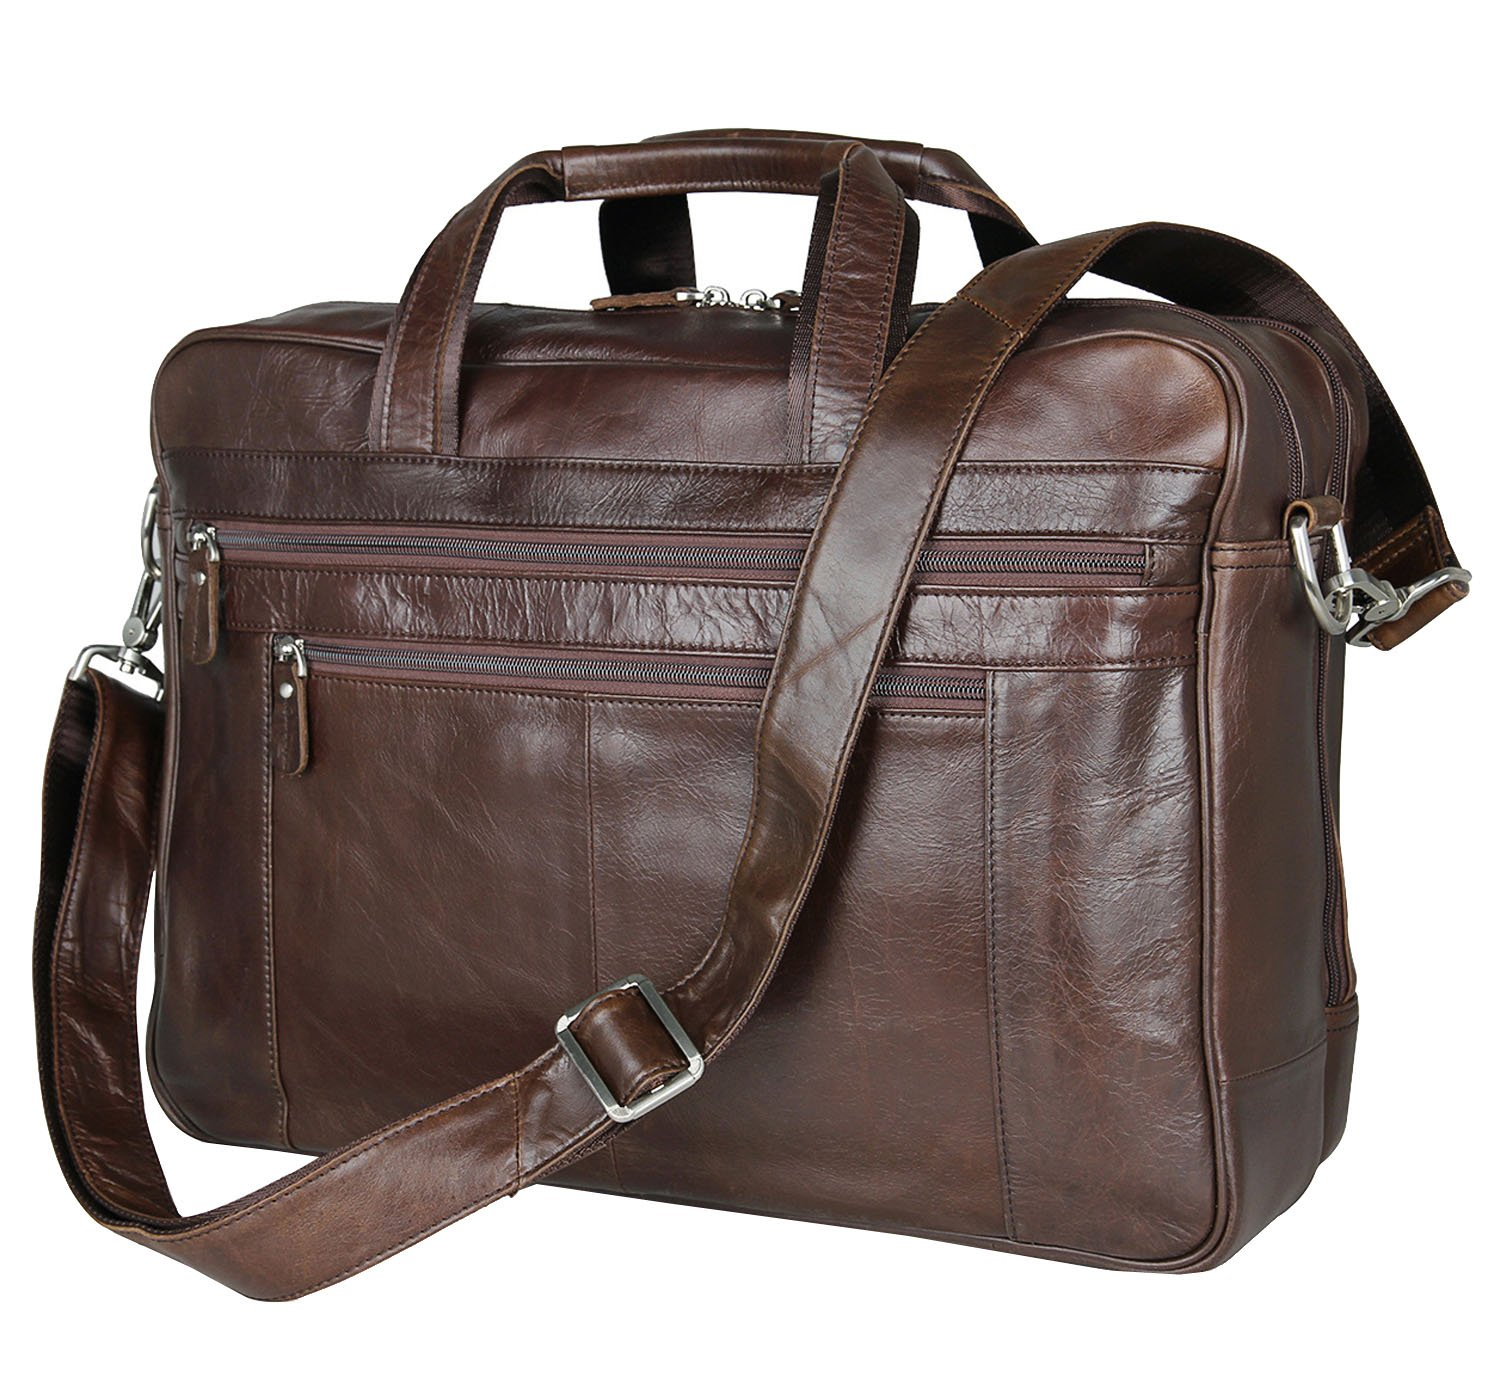 Laptop Bags, Berchirly Genuine Leather Work Office Brifecase Business Bag fits 17-inch Laptop